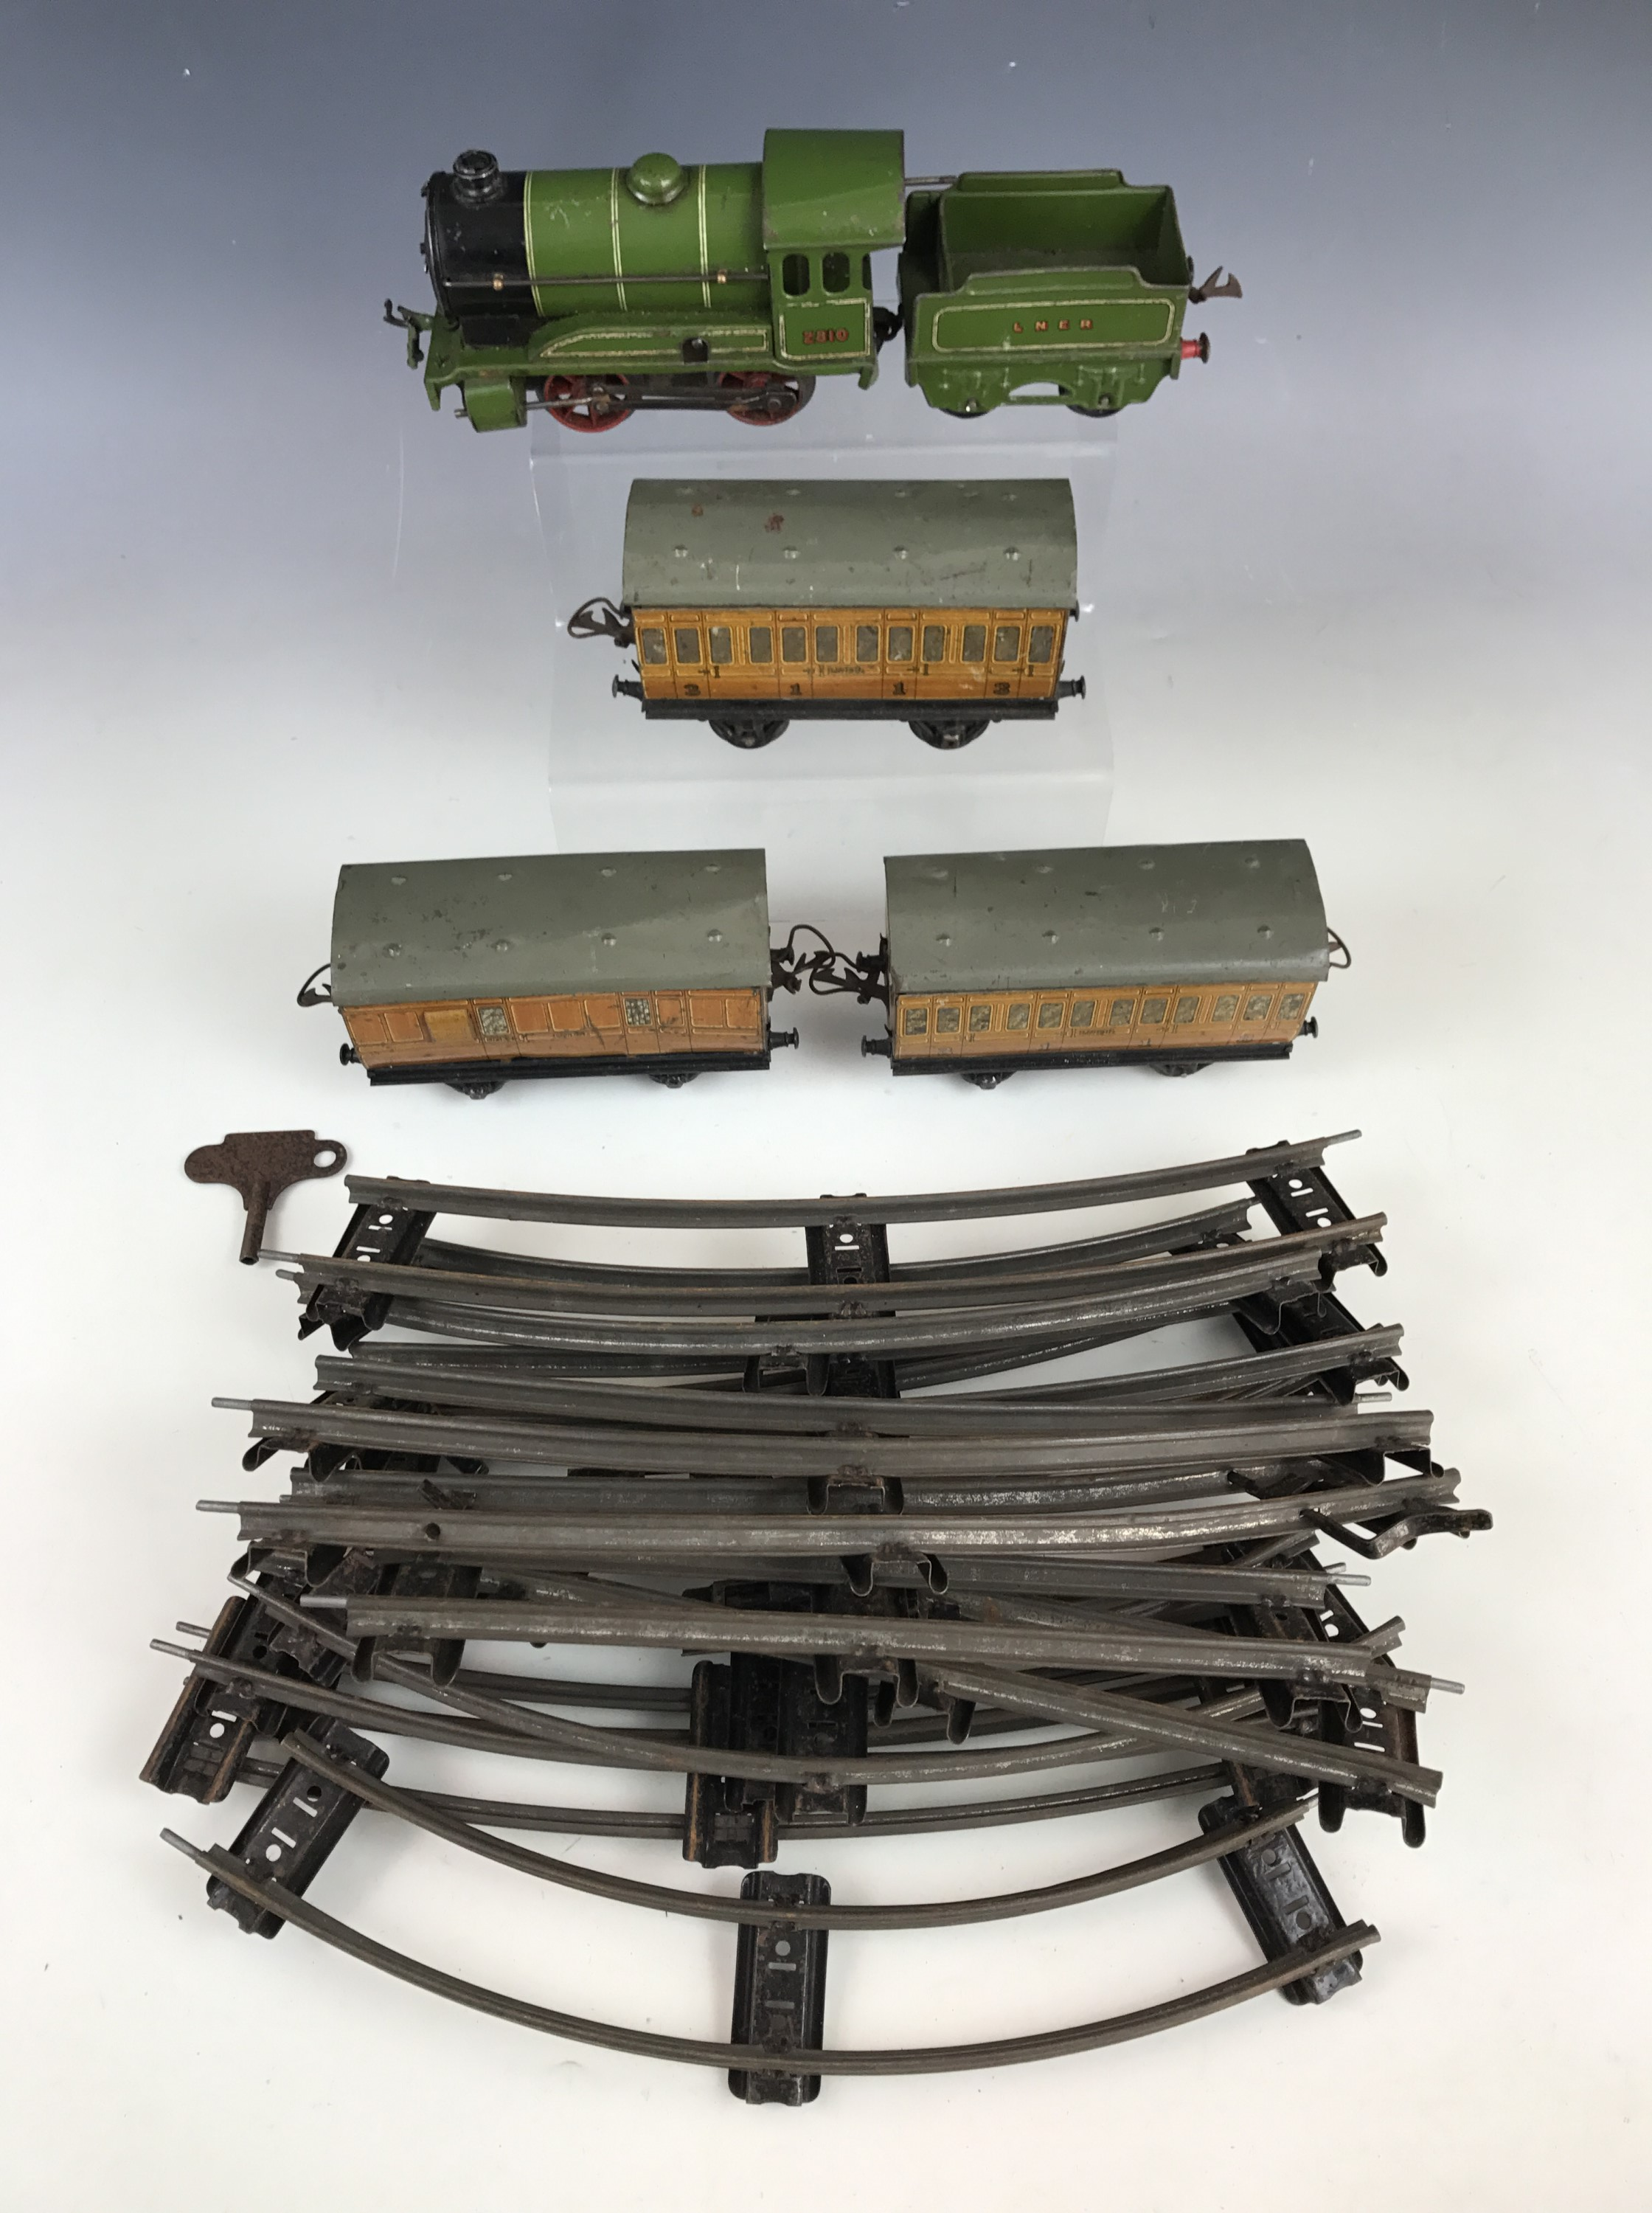 Lot 50 - A Hornby clockwork 1936-41 O Gauge 2810 dark green LNER 0-4-0 locomotive and tender in racing green,